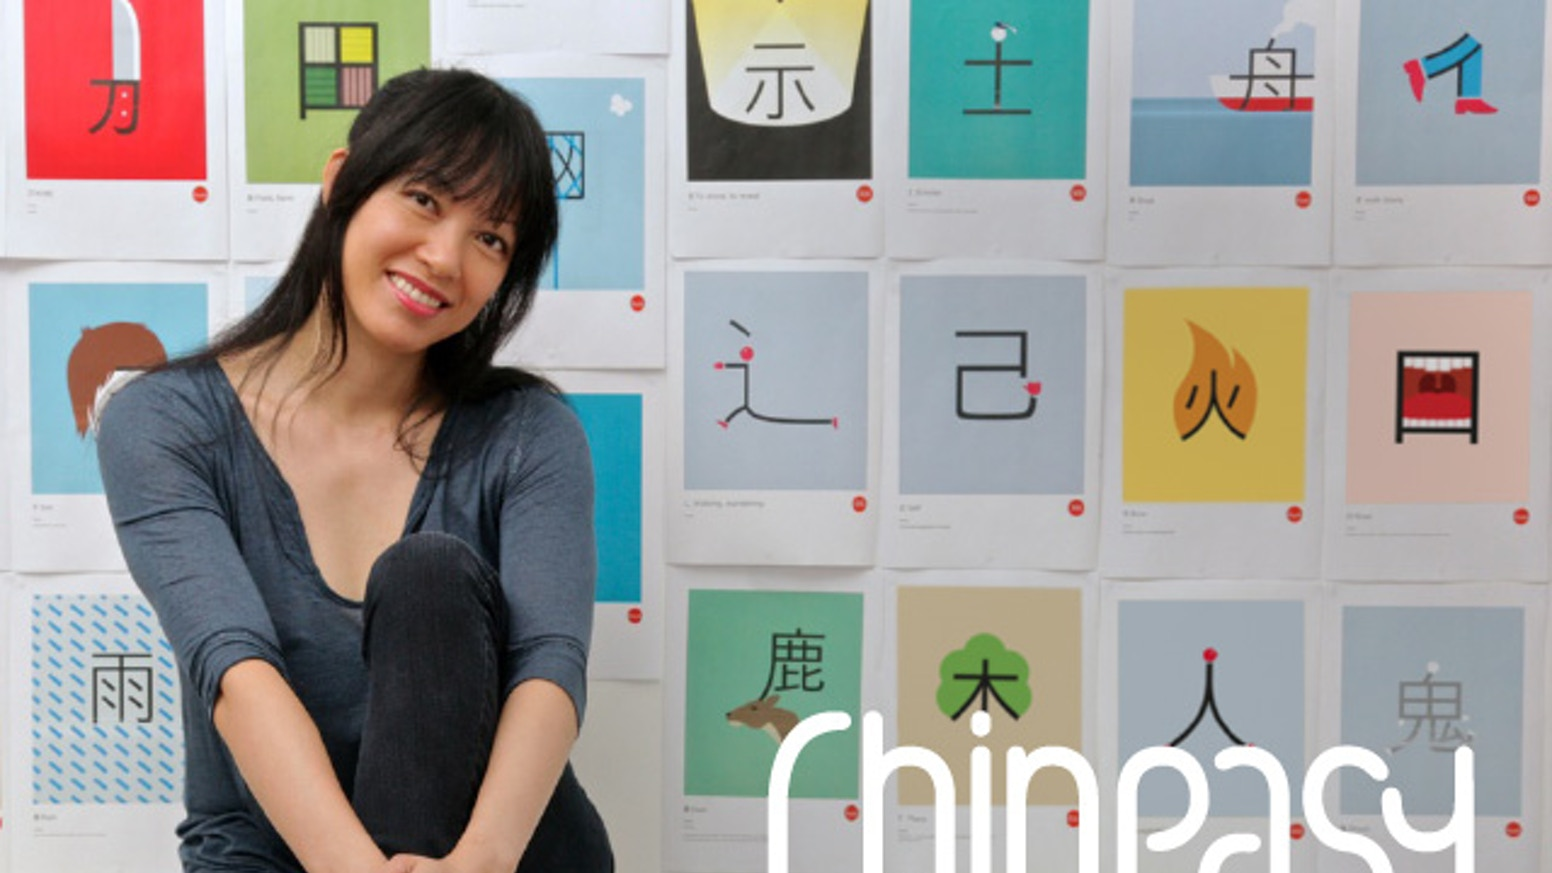 Chineasy: A bright and engaging illustrated methodology for learning Chinese through fun and whimsical illustrations.